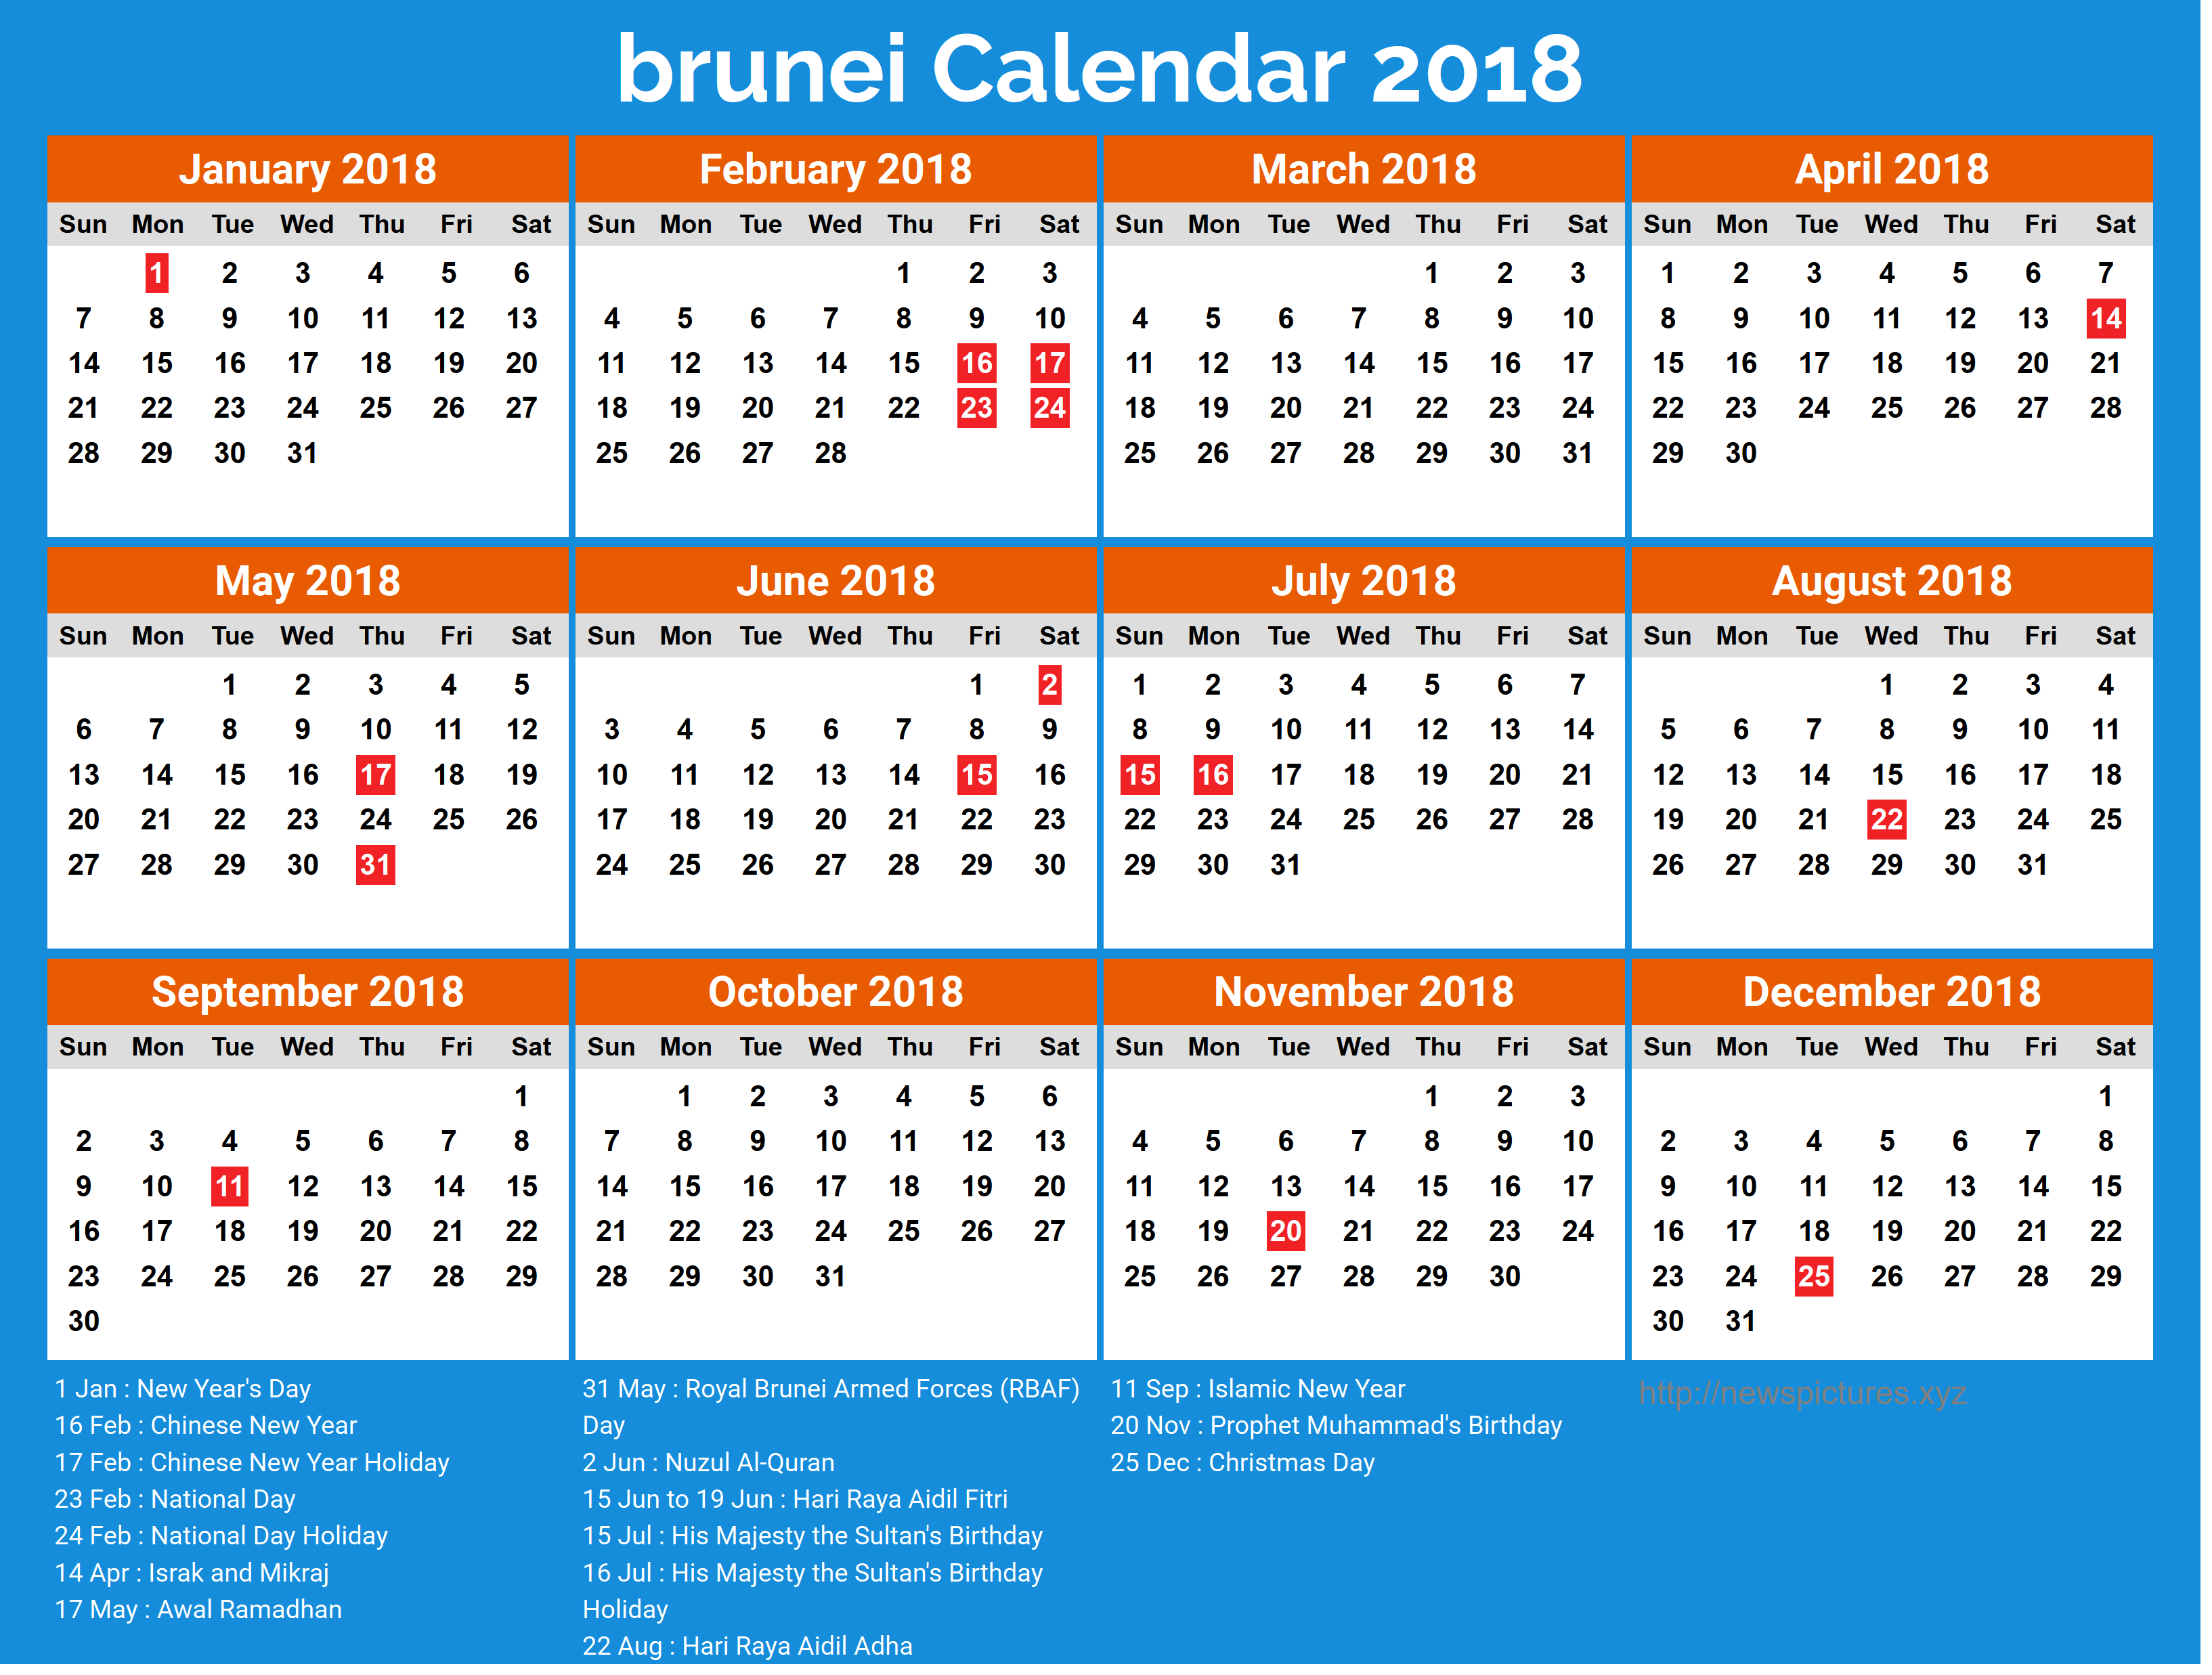 School Calendar 2018 Brunei : Yearly brunei calendar with holidays list